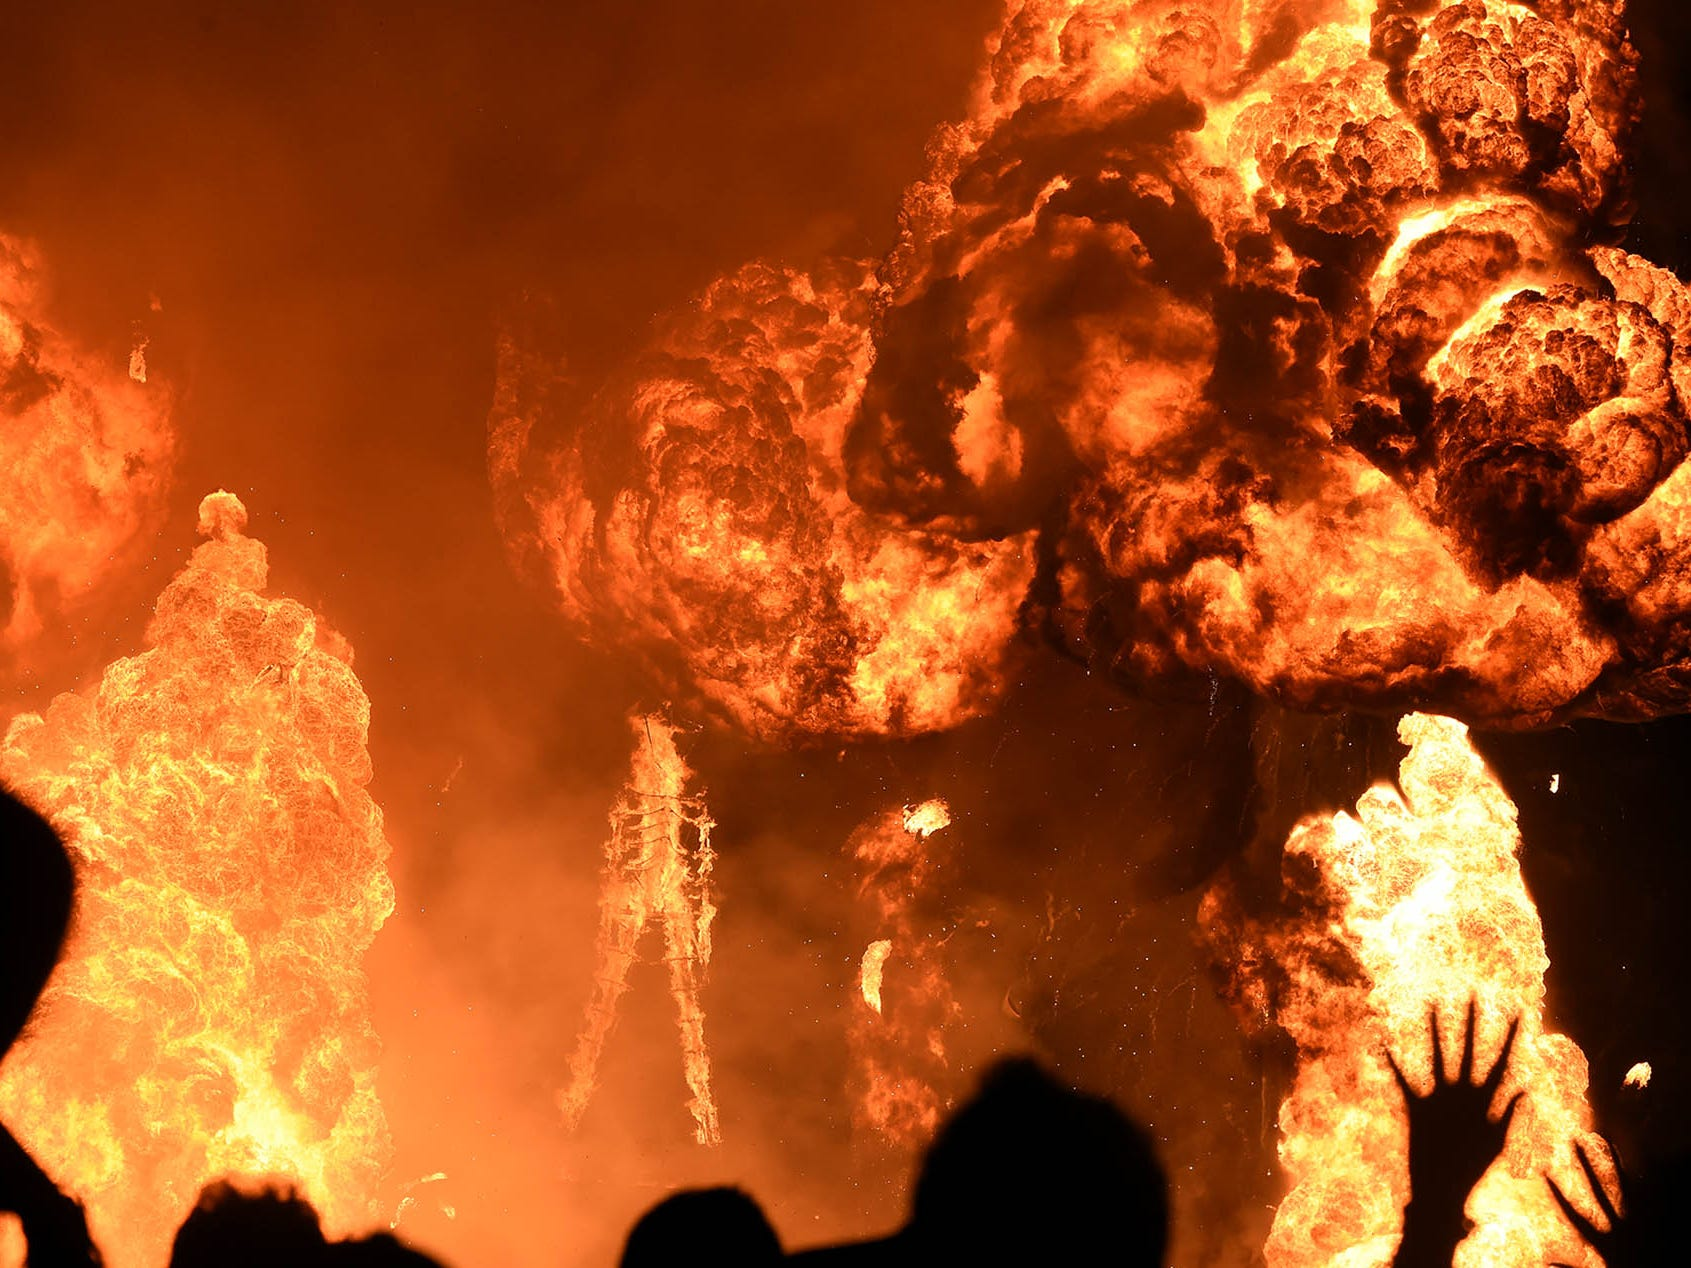 Thousands gathered to watch the effigy burn at Burning Man 2018.